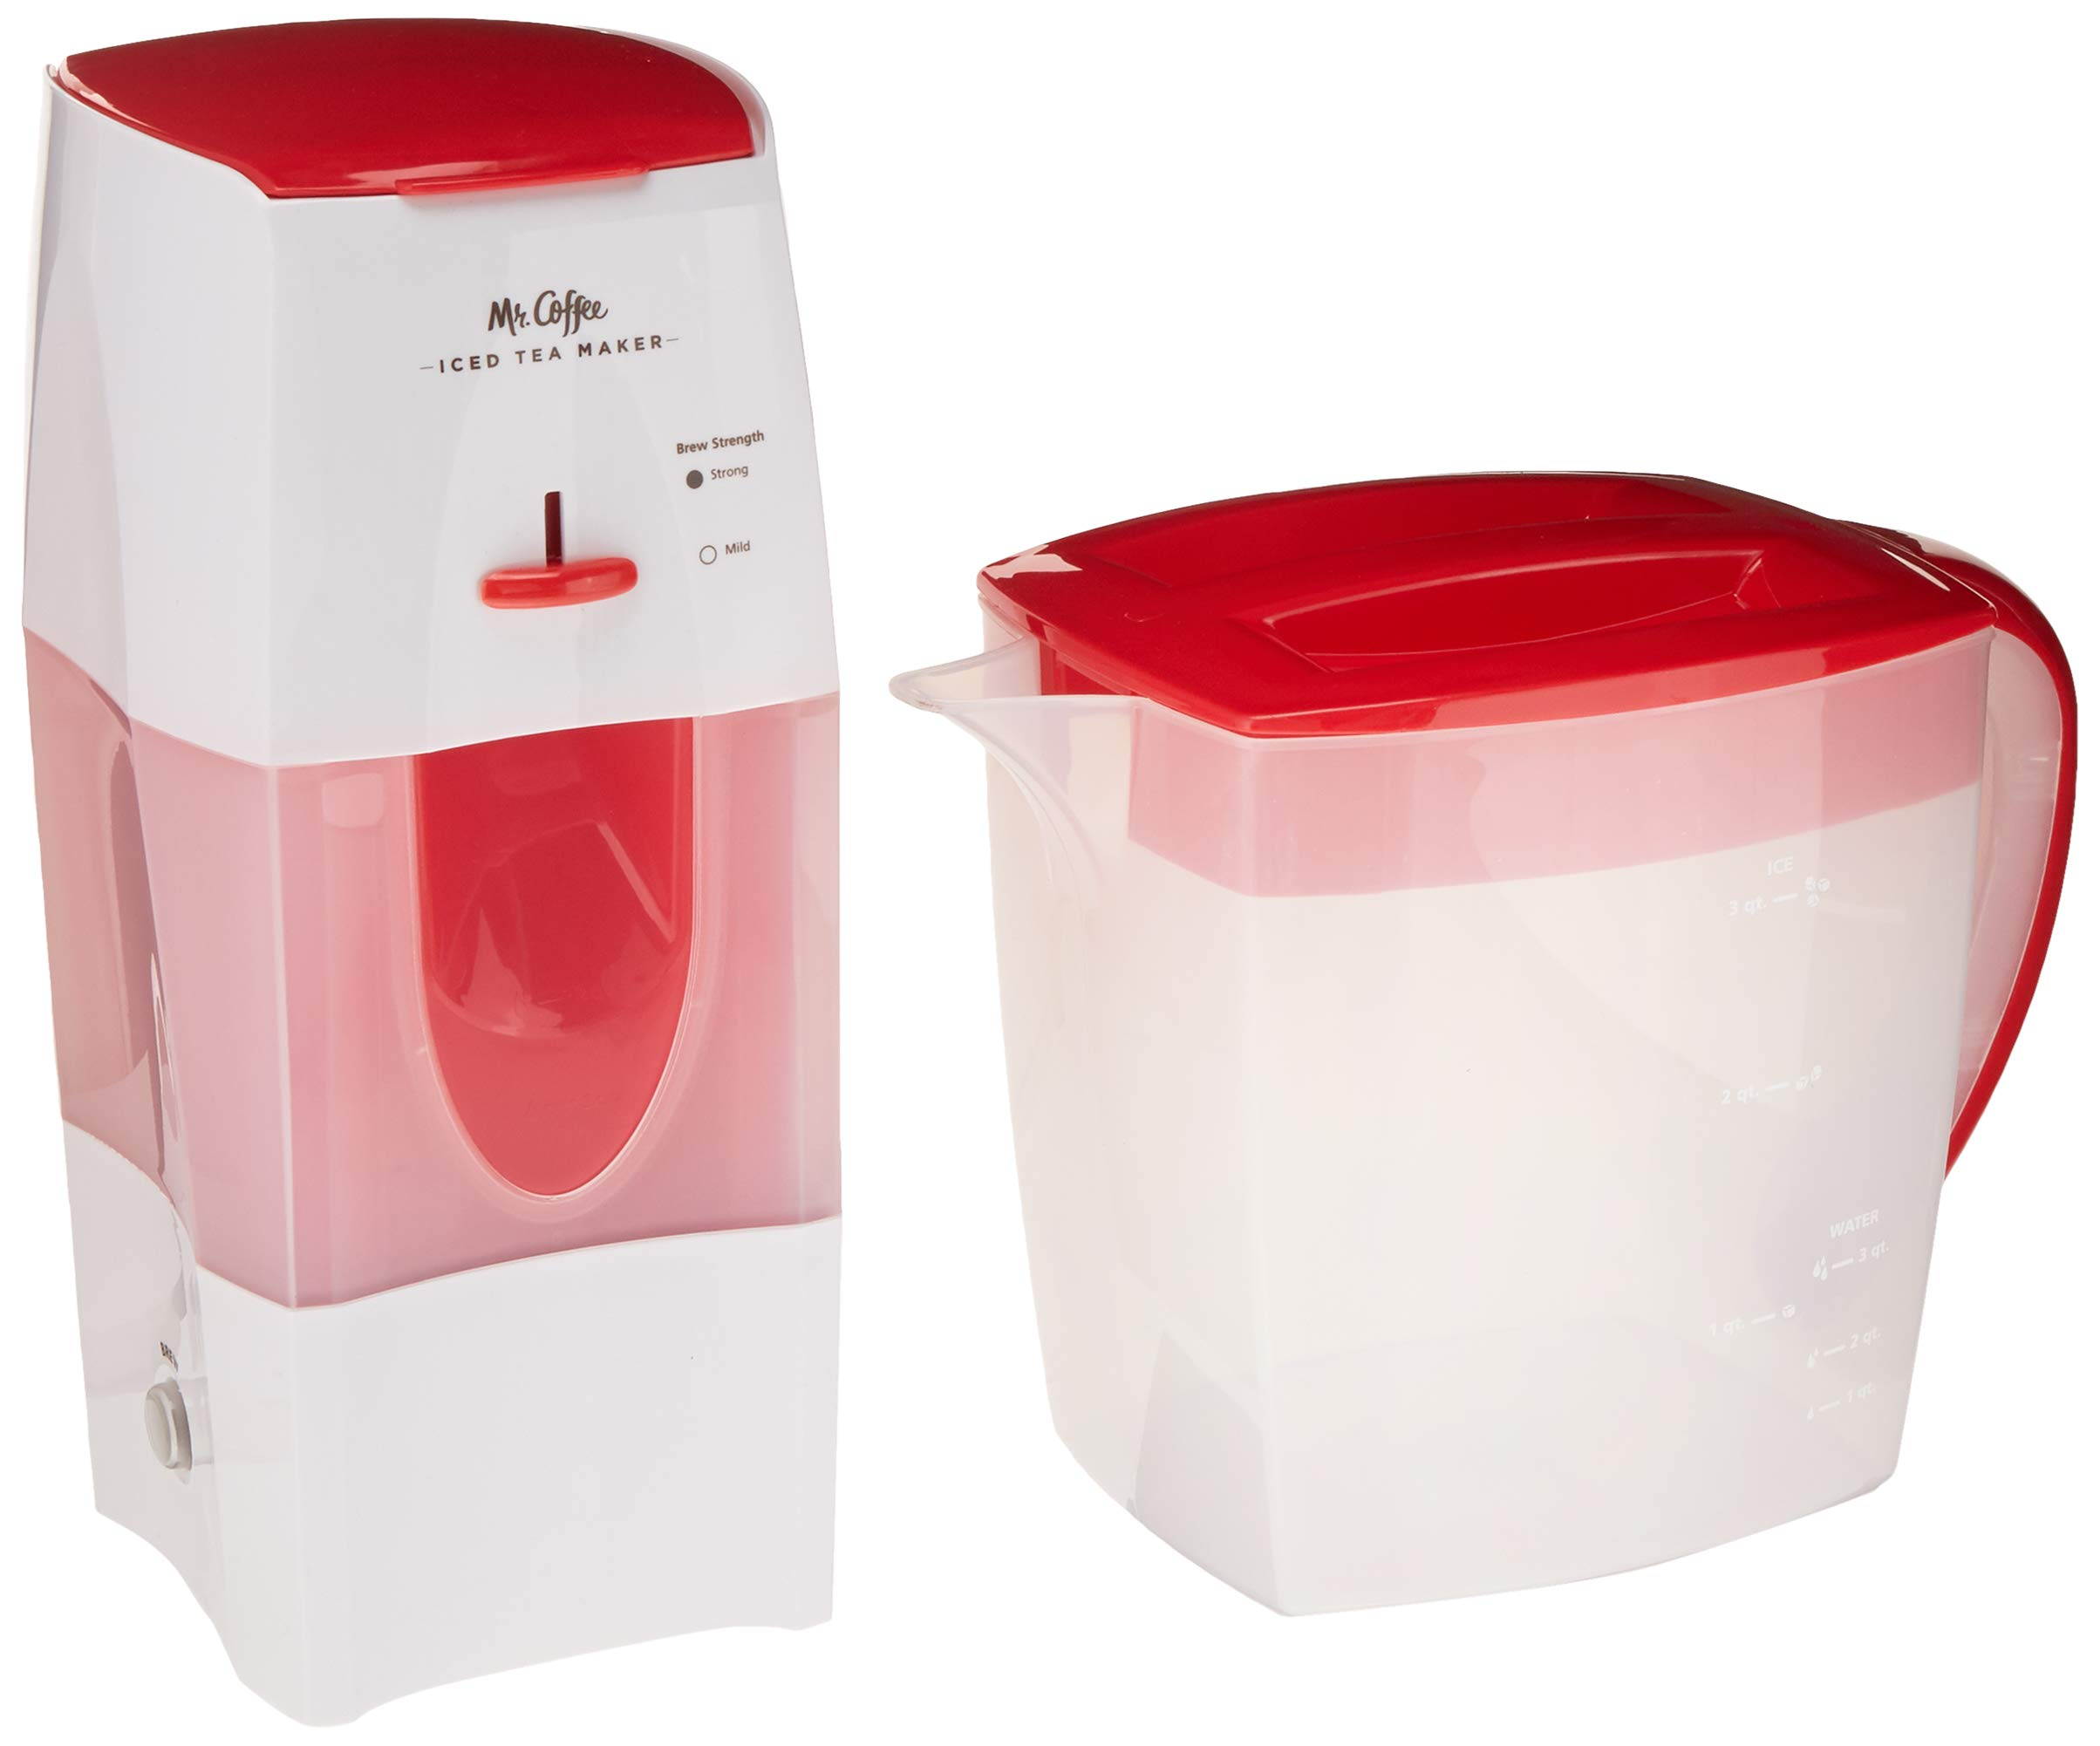 Mr. Coffee 3-Quart Iced Tea and Iced Coffee Maker, Red by Mr. Coffee